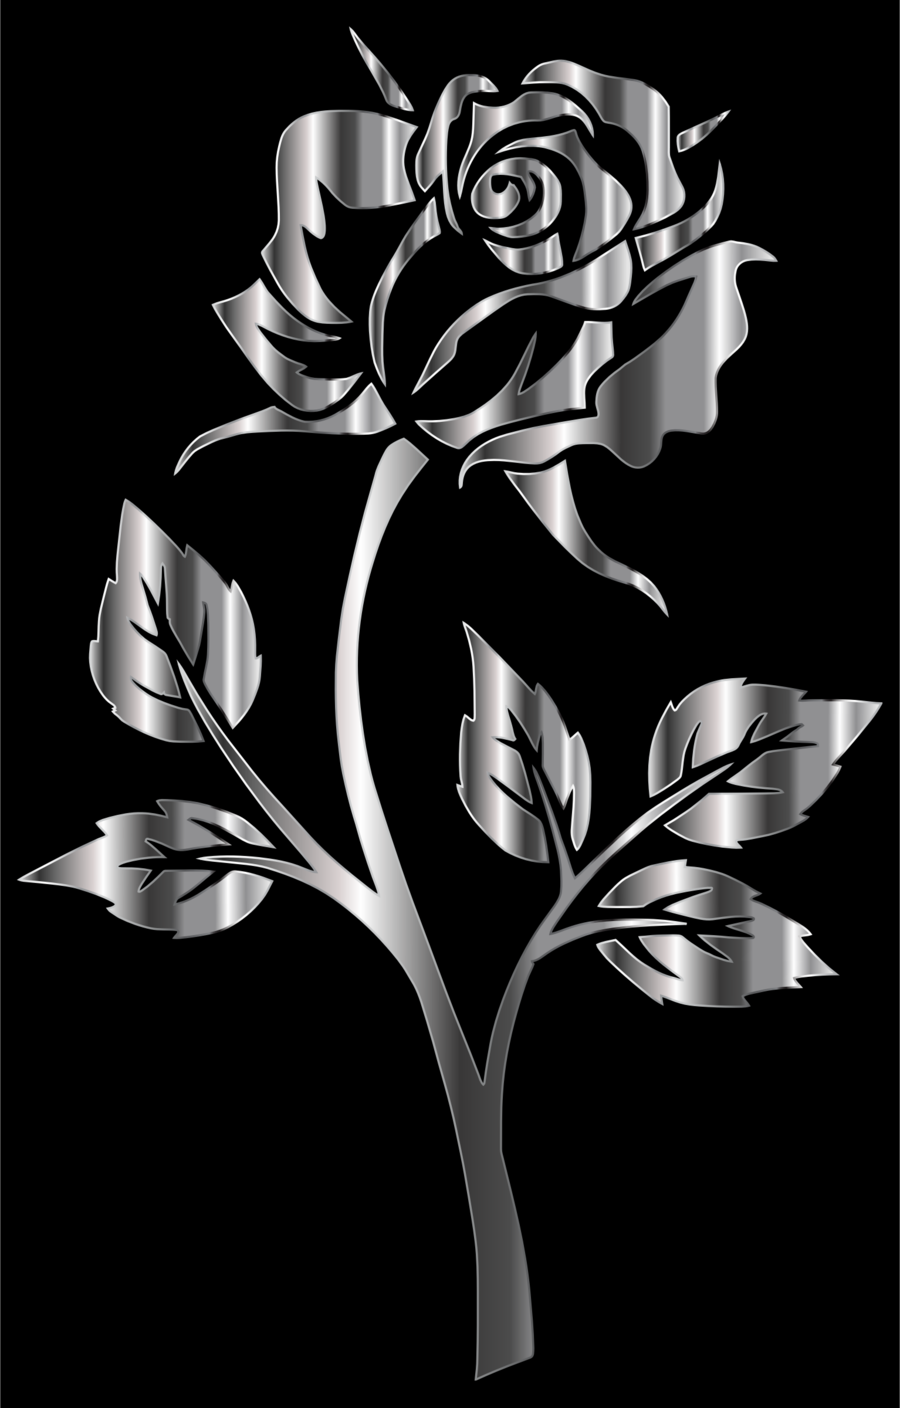 Black And White Flower clipart.